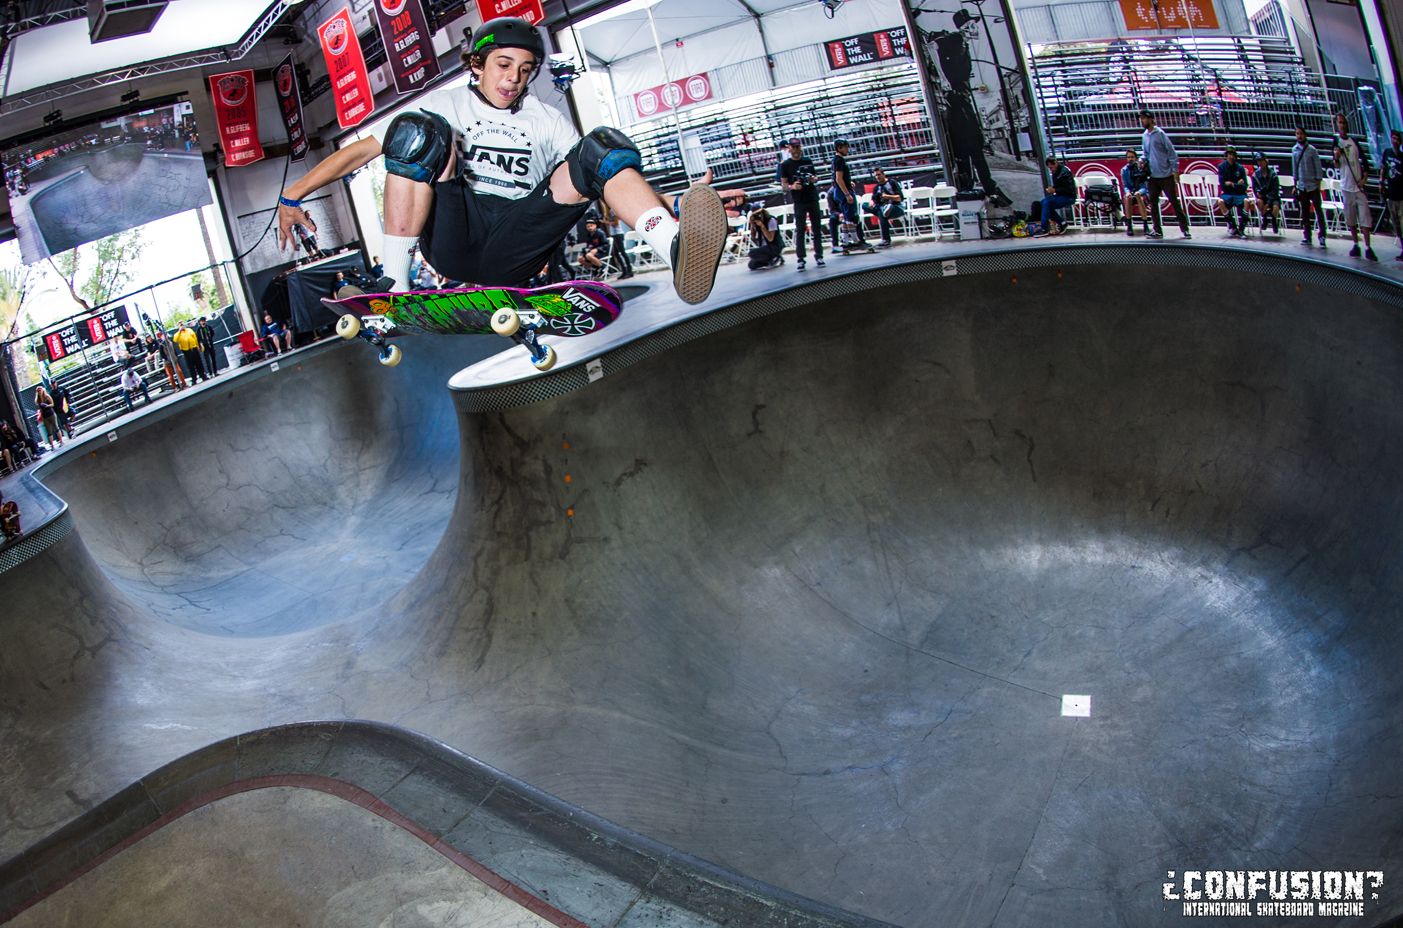 248e0f0d48 One footer over the hip into the round bowl.